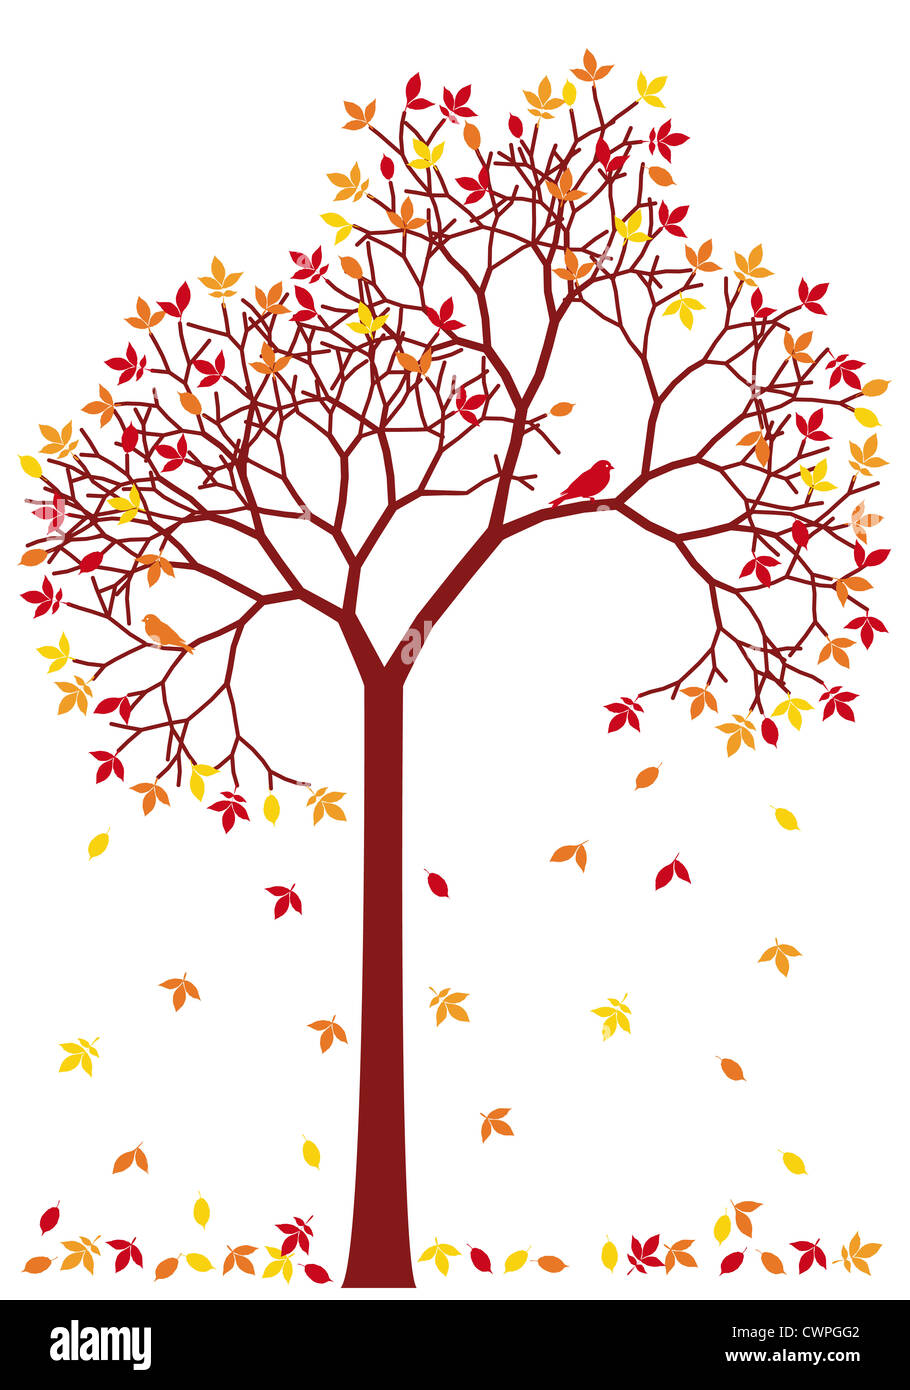 autumn tree with colorful falling leaves, background illustration - Stock Image